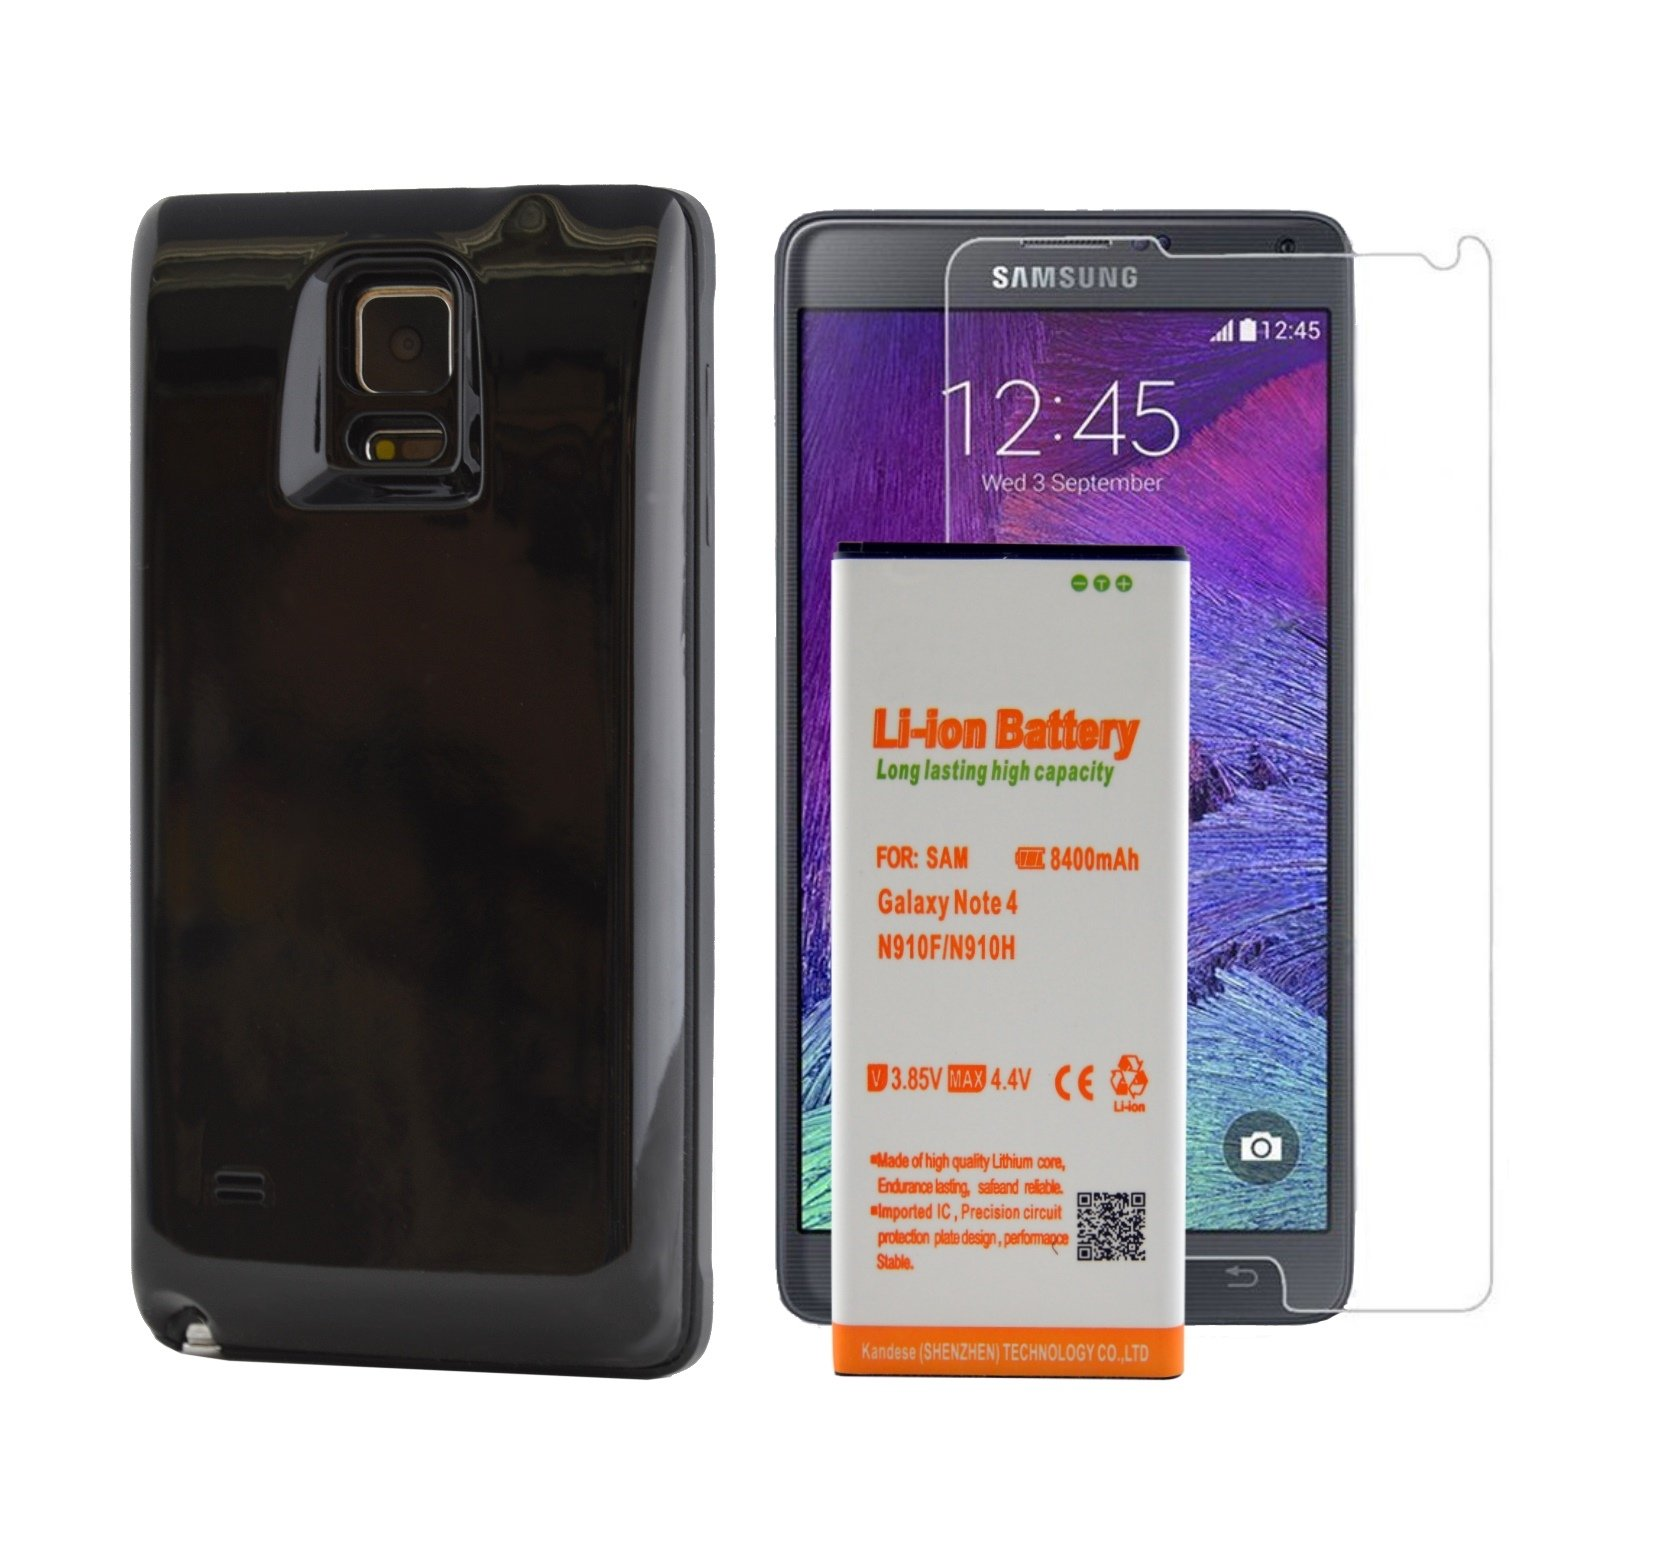 samsung galaxy note 4 extended battery 8400 mah power pack ebay. Black Bedroom Furniture Sets. Home Design Ideas